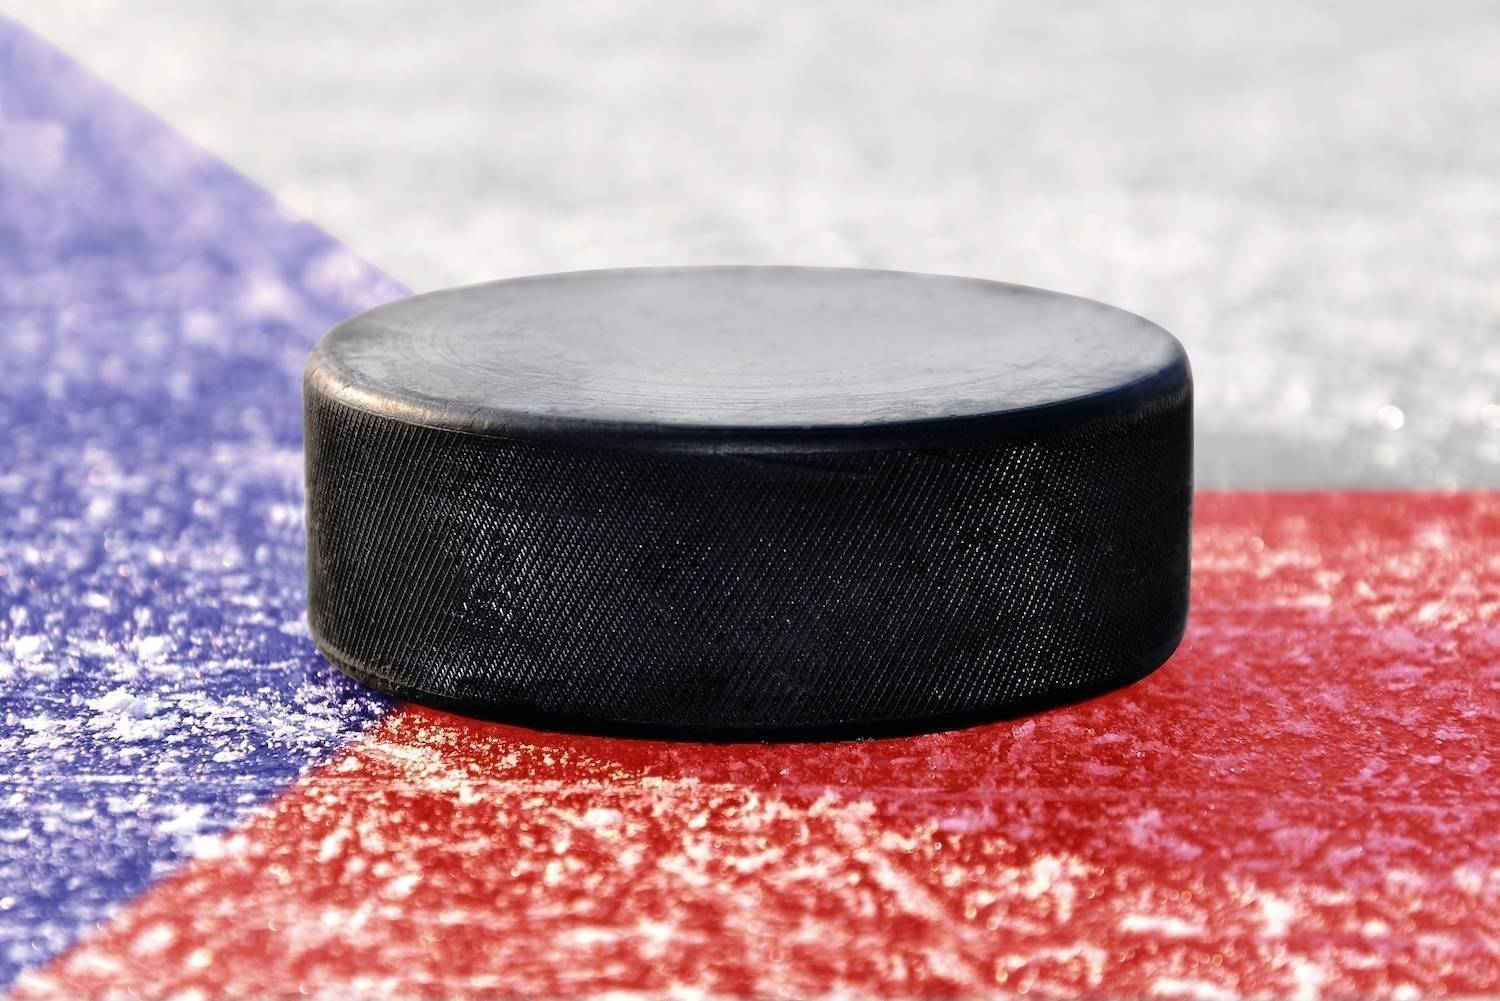 Let's TAPinto the NHL Playoffs